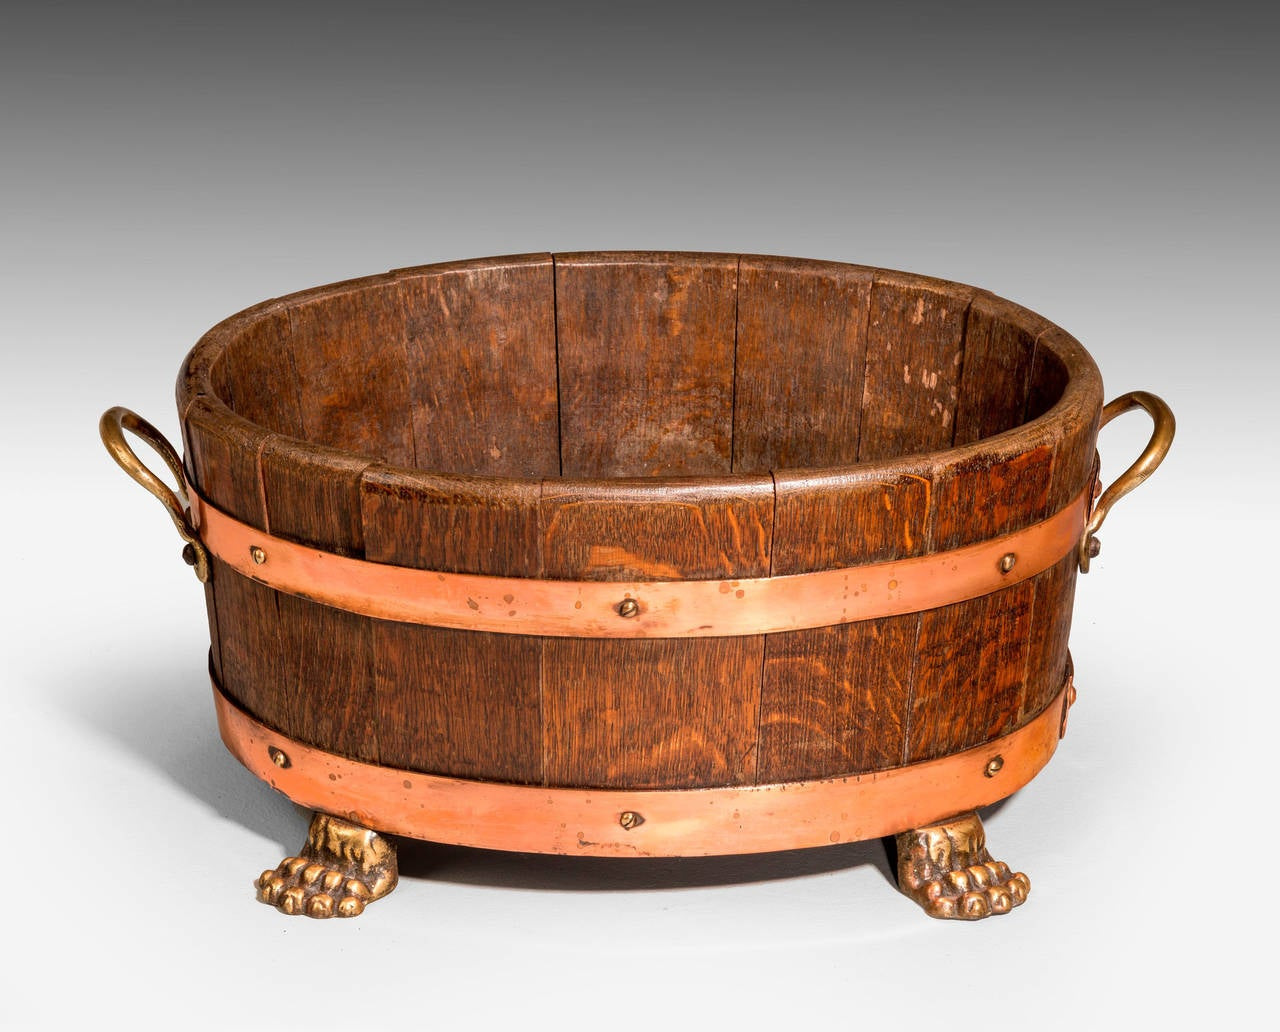 Early 20th Century Oak Coopered Planter In Good Condition For Sale In Peterborough, Northamptonshire